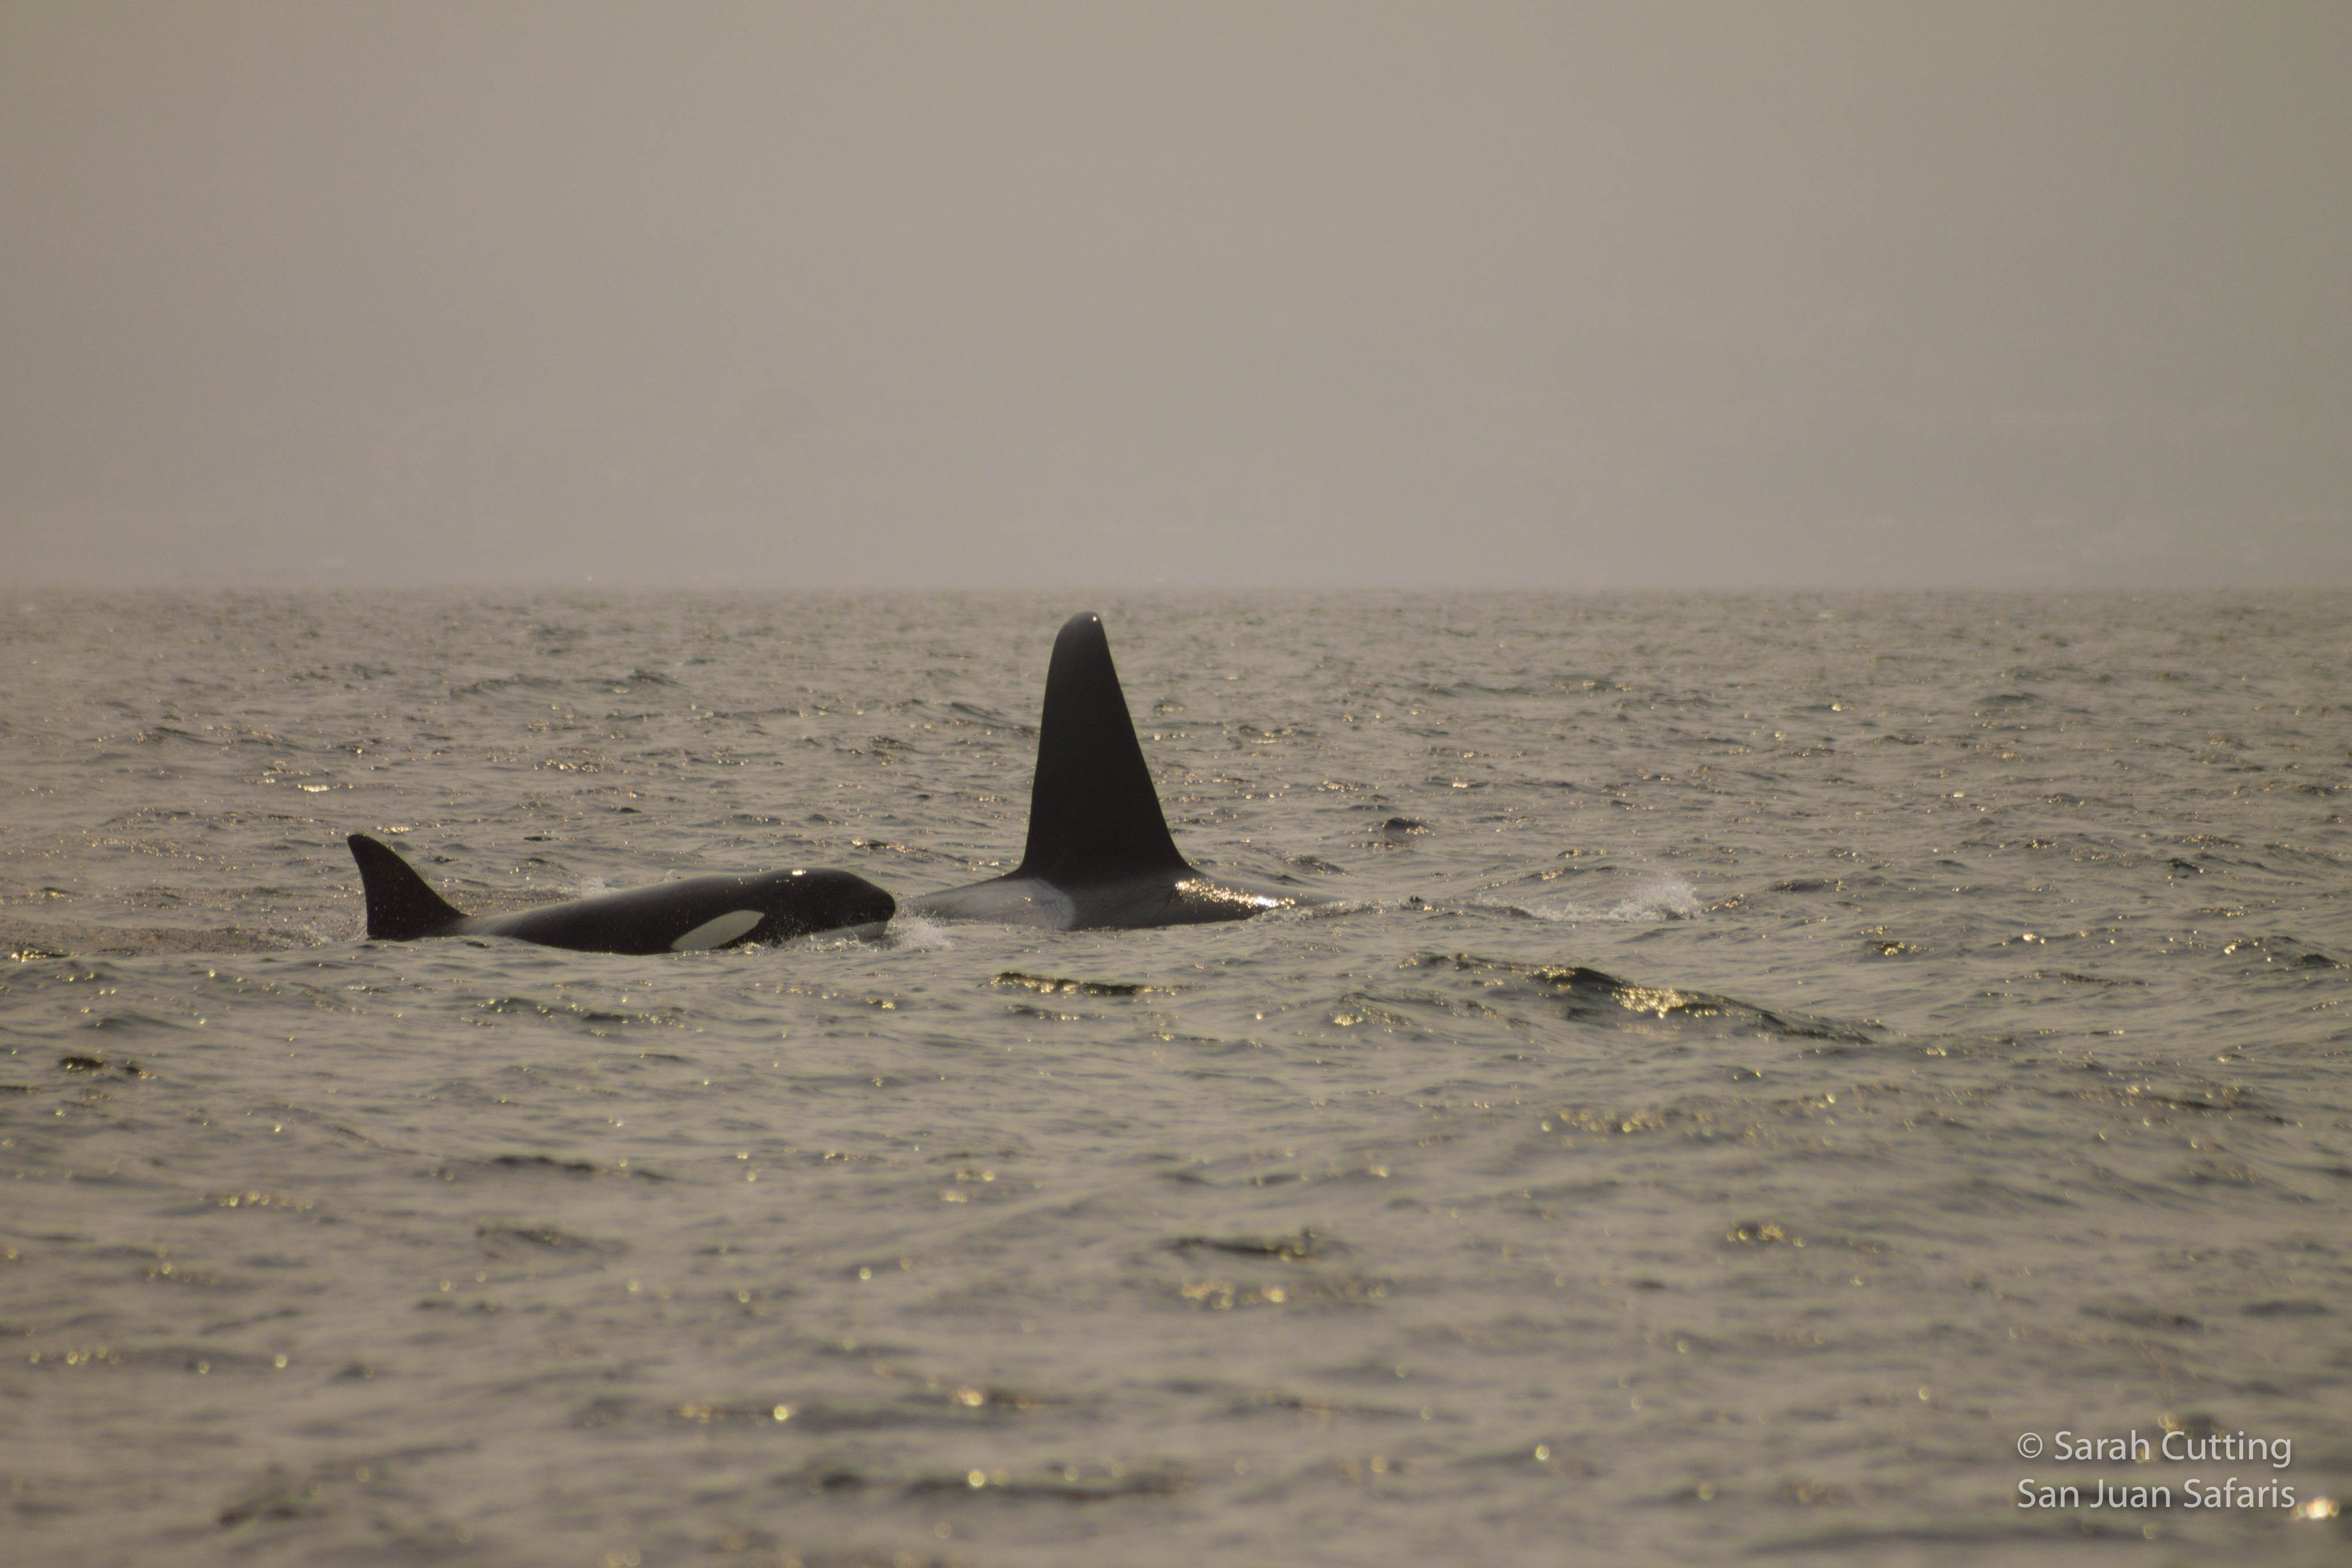 Smoky Skies and Orca-Filled Waters